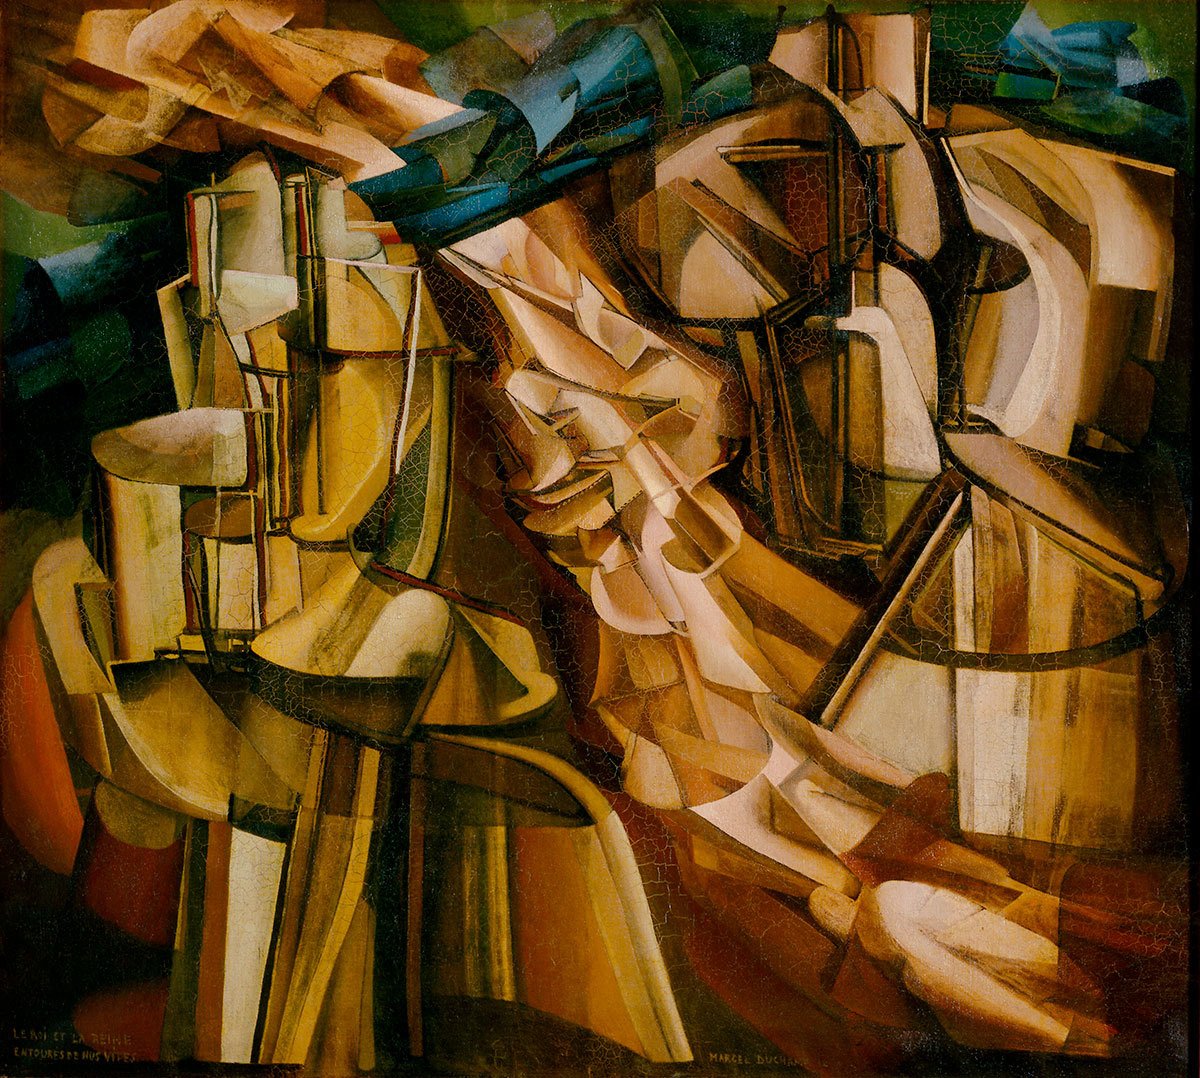 Marcel Duchamp, The King and Queen Surrounded by Swift Nudes, 1912. Oil on canvas. 114.6 x 128.9 cm. Philadelphia Museum of Art, The Louise and Walter Arensberg Collection, 1950-134-63a © Succession Marcel Duchamp/ADAGP, Paris and DACS, London 2017.